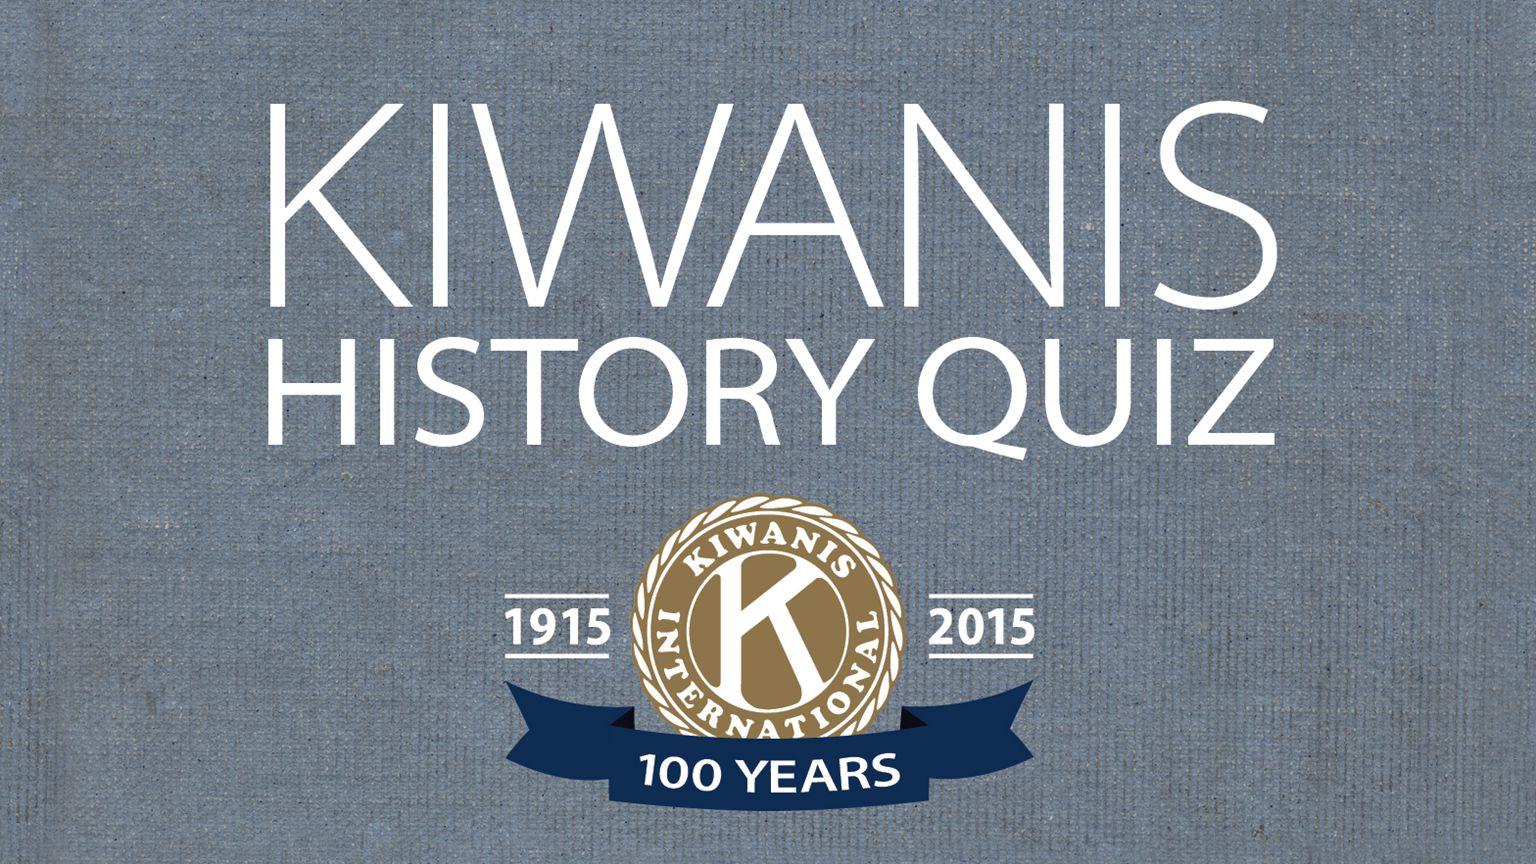 The first Kiwanis club was founded in Detroit on January 21, 1915.